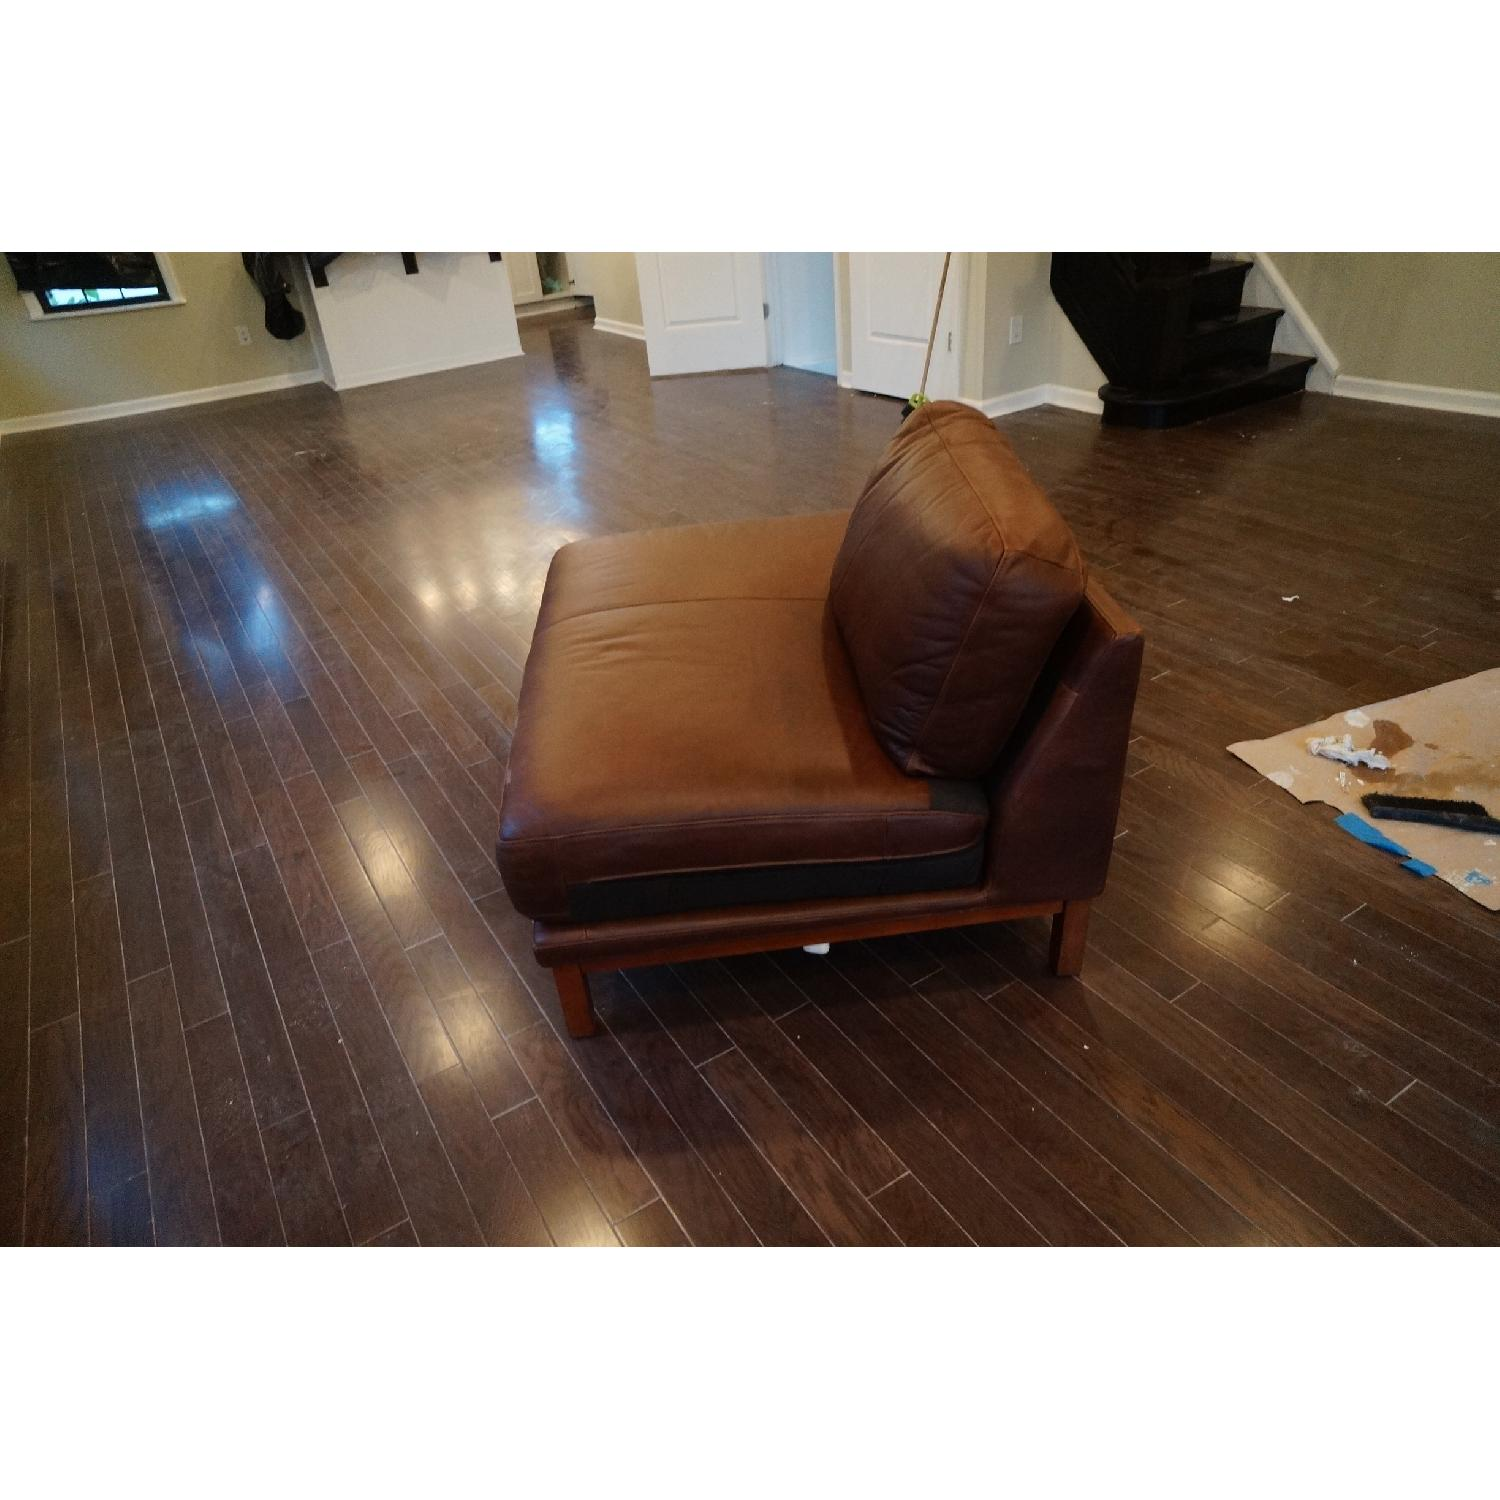 West Brown Leather Chaise Lounge Chair - image-3